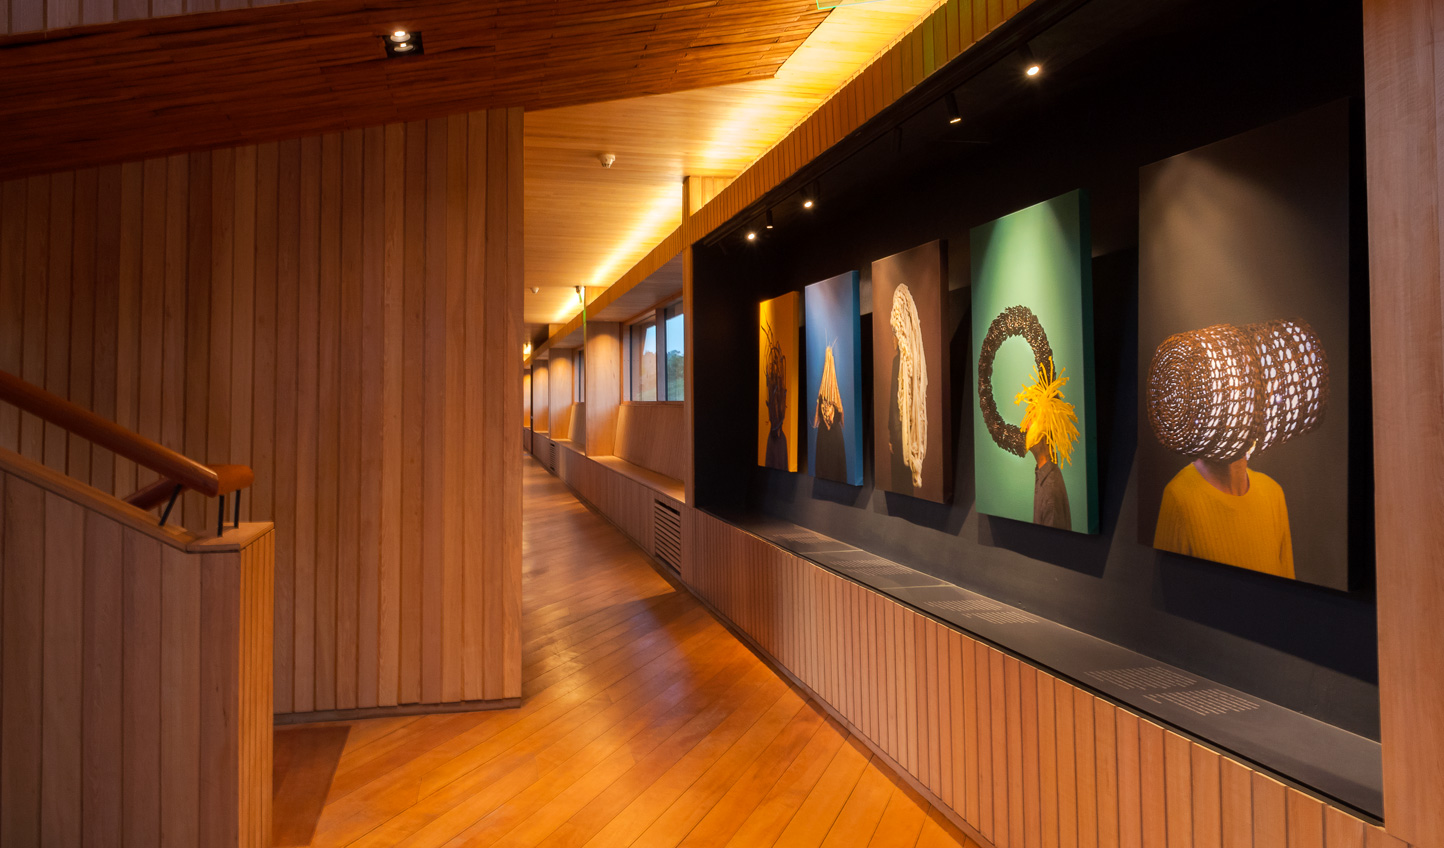 Striking modern art perfectly complements the hotel's contemporary design